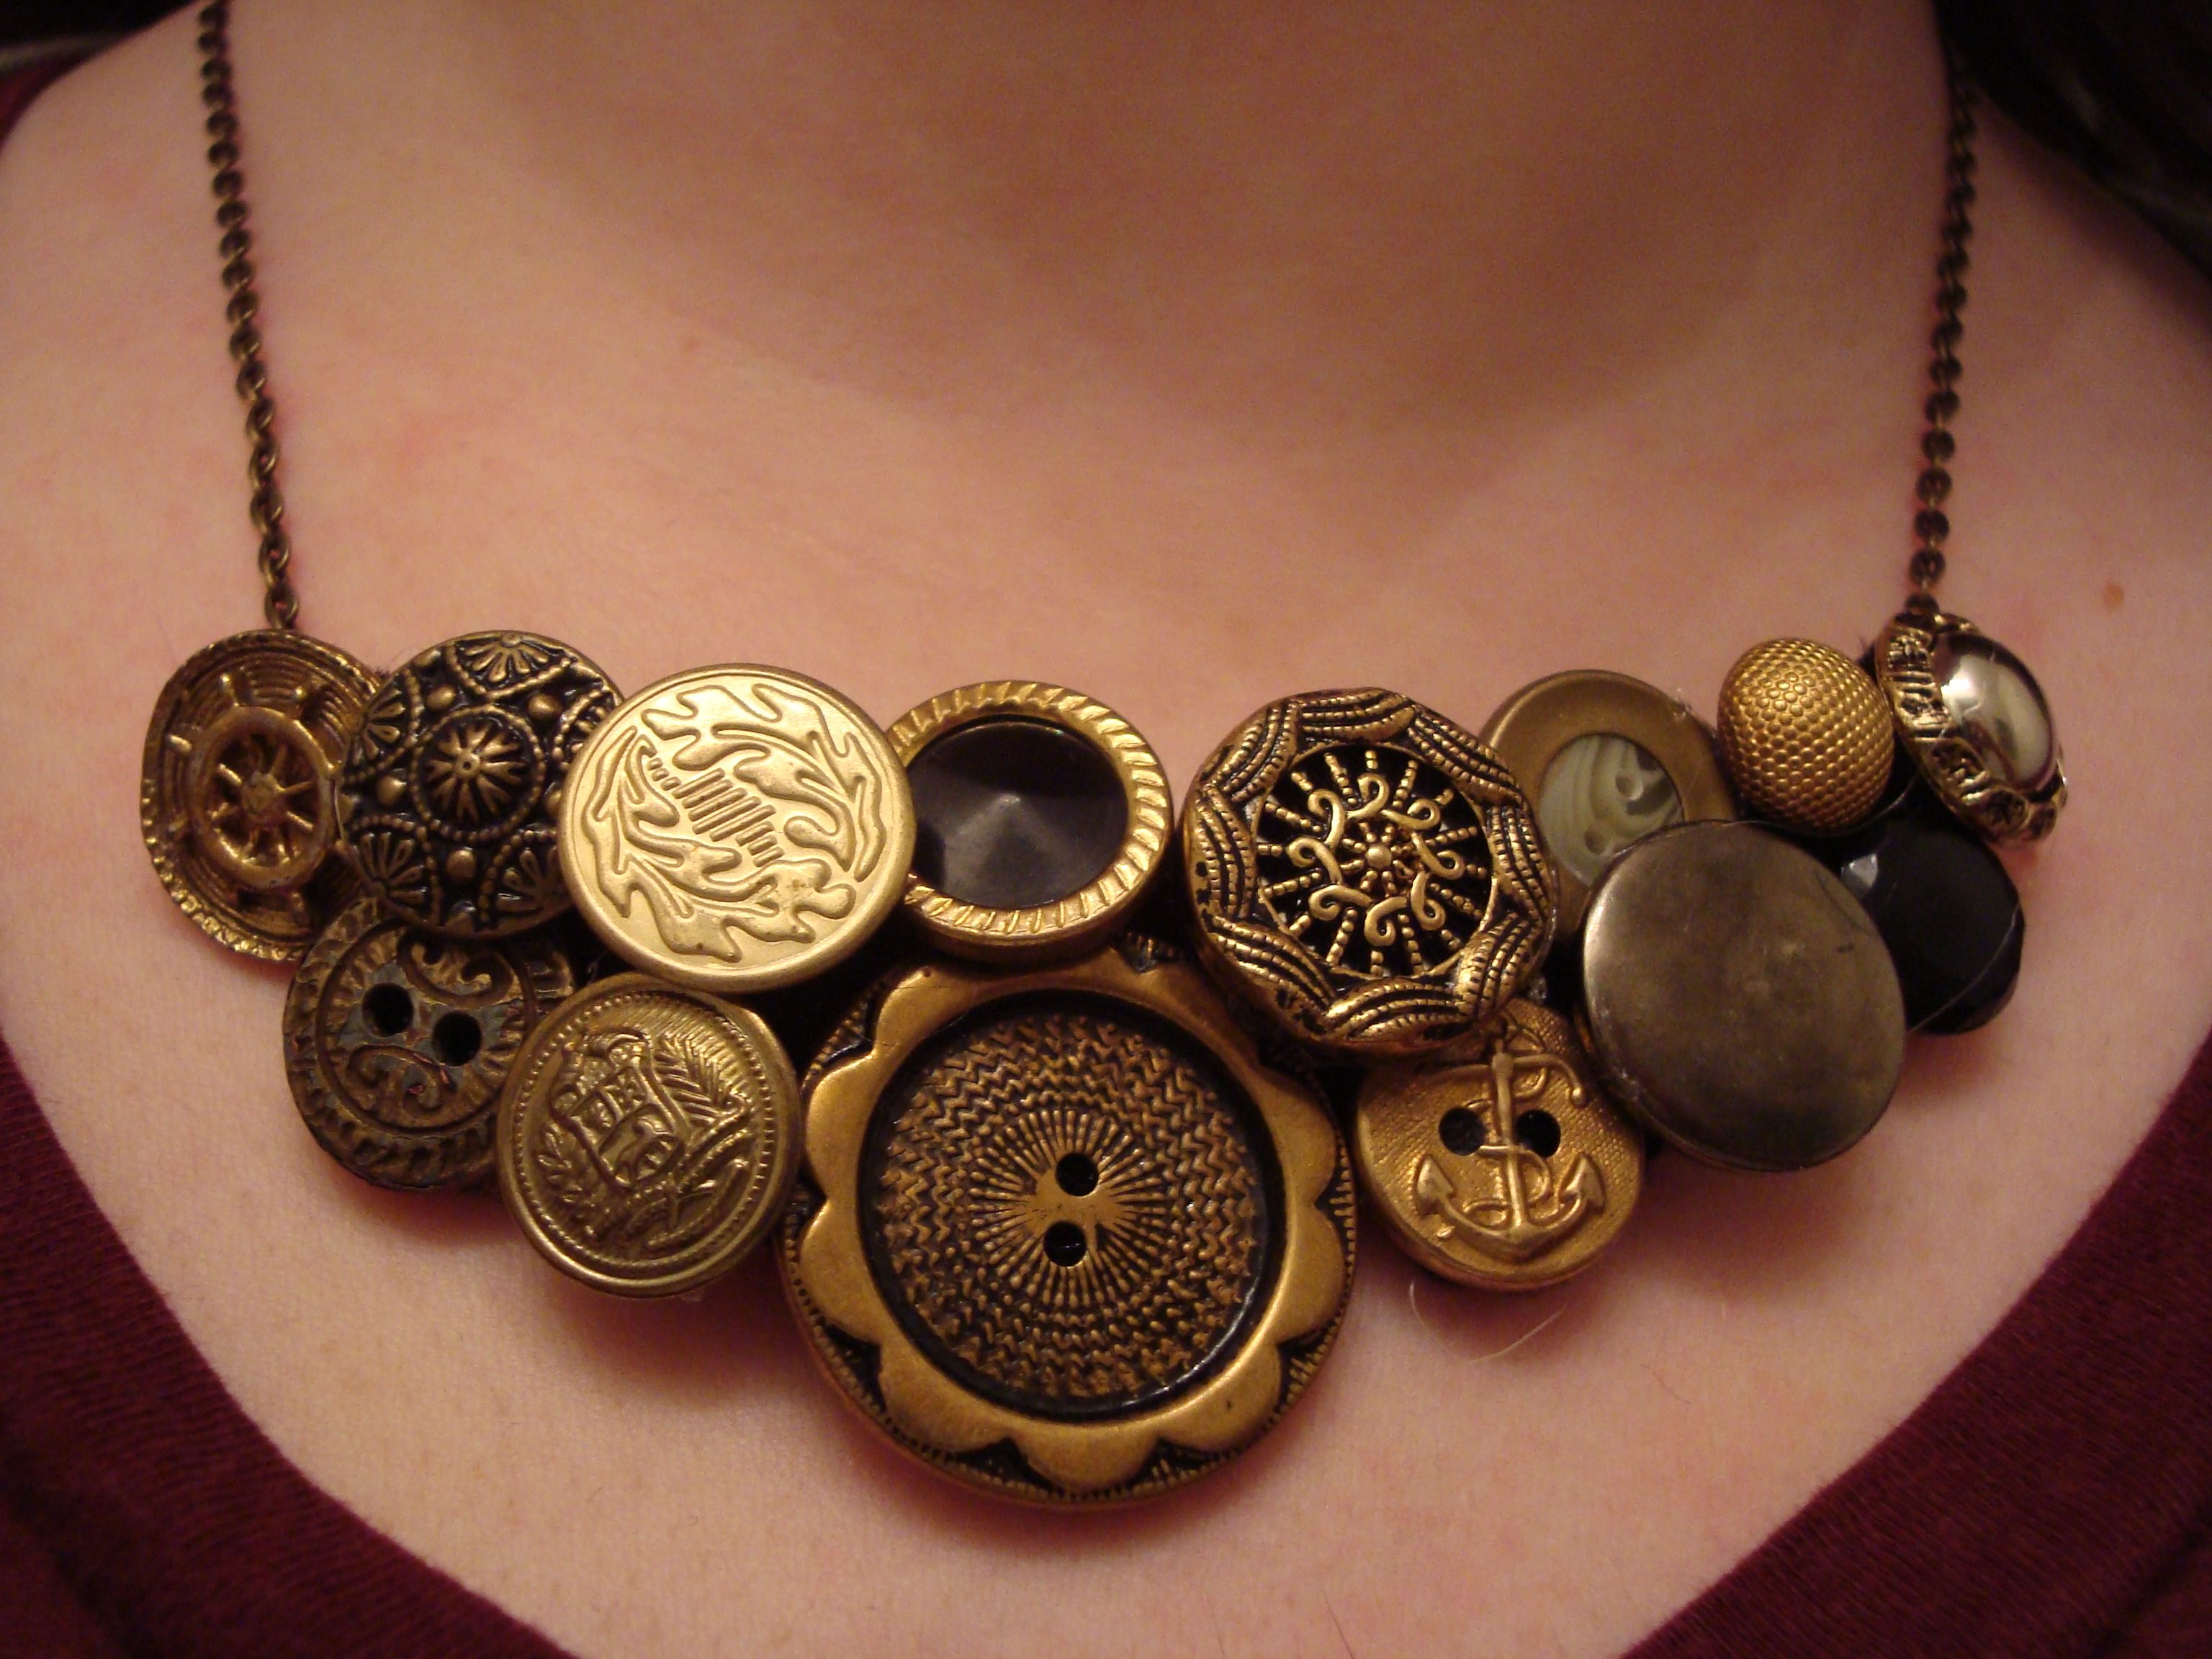 DIY Vintage Button Necklace // Hot-glue buttons onto felt, cut around the design, sew on a chain, and voila! Statement necklace.